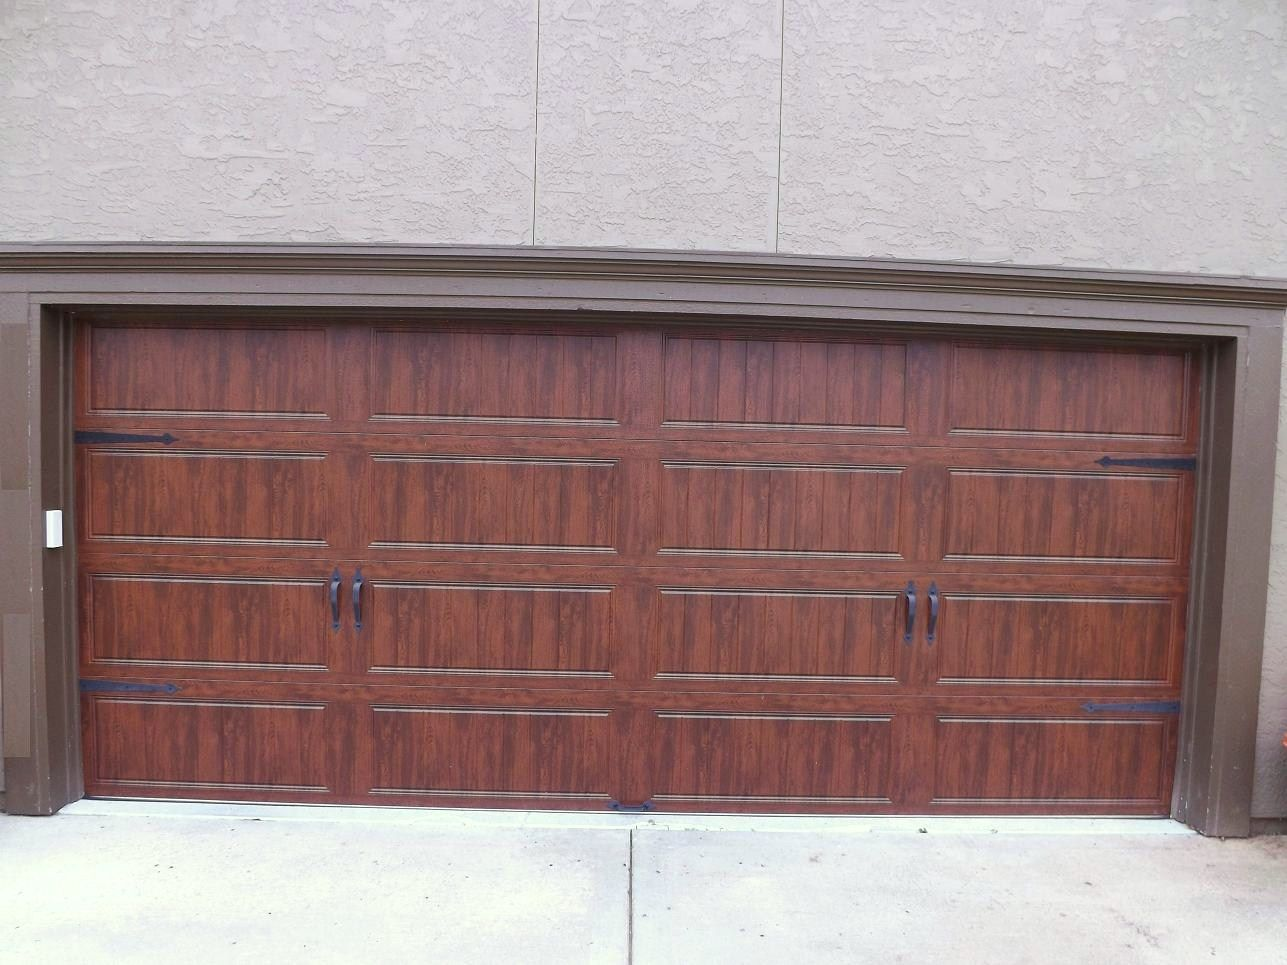 Clopay Gallery Garage Door Ultra Grain Walnut Oak Wrought Iron